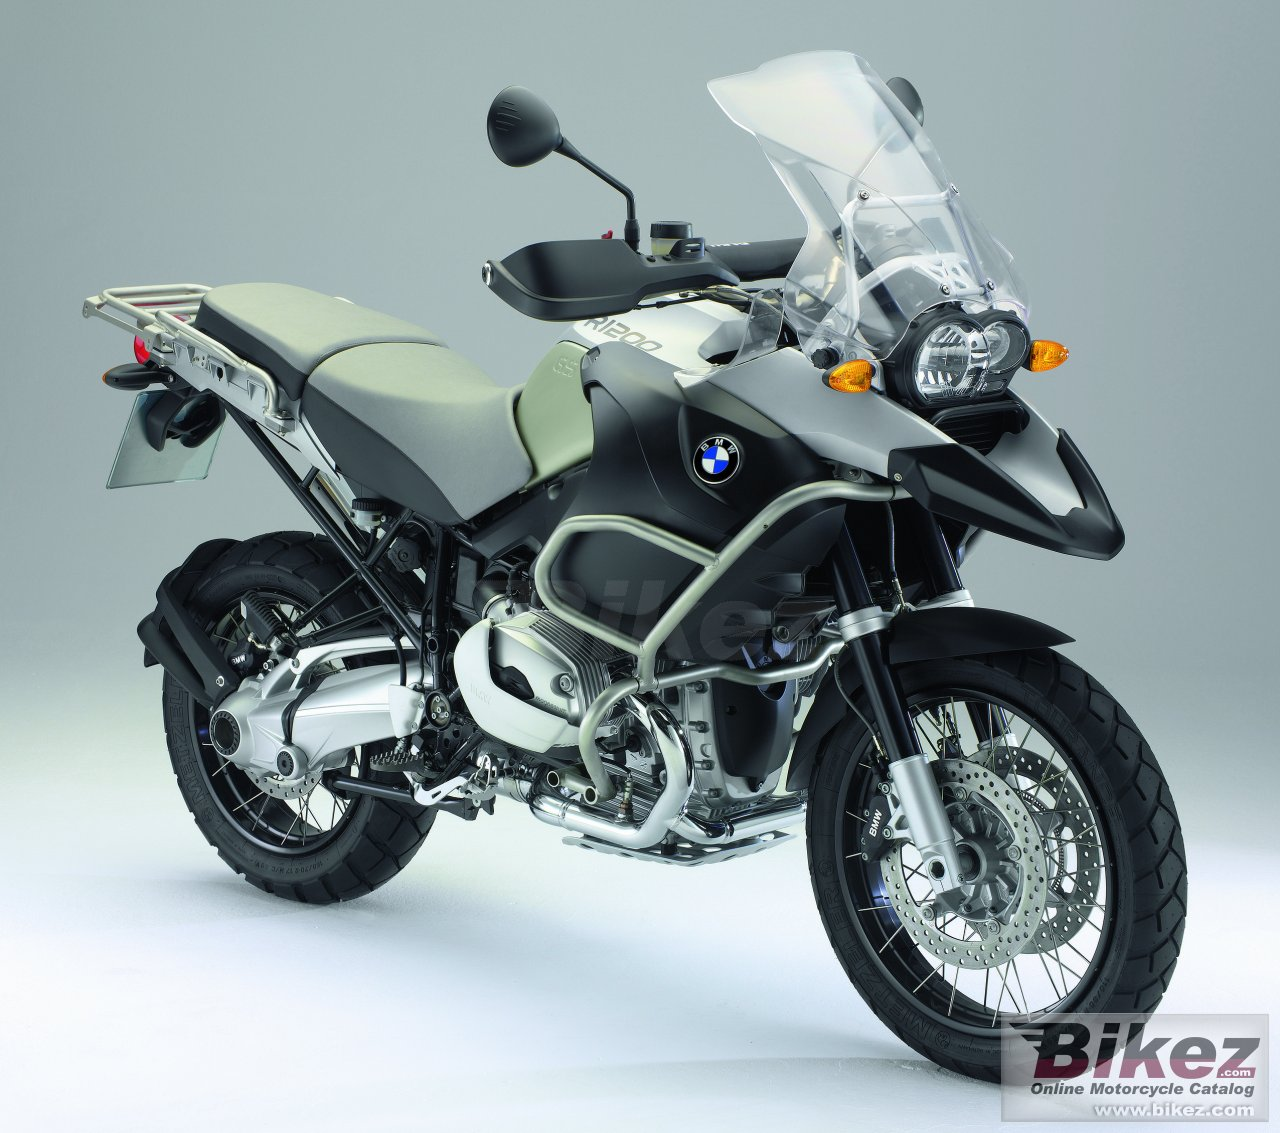 Big BMW r1200gs adventure picture and wallpaper from Bikez.com